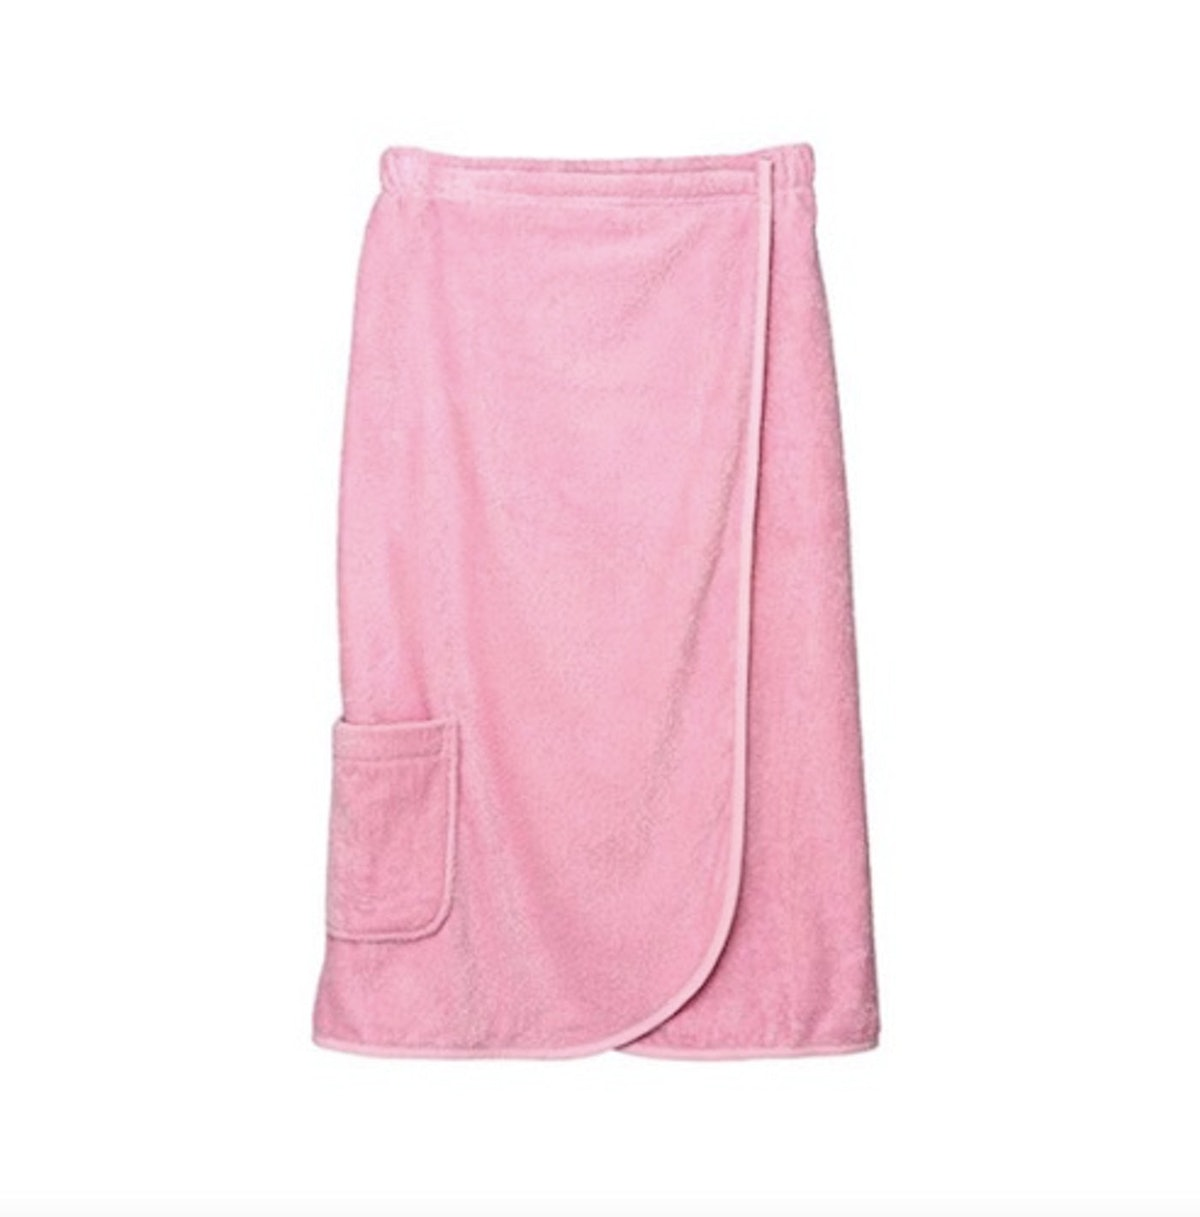 TowelSelections Women's Wrap Terry Towel